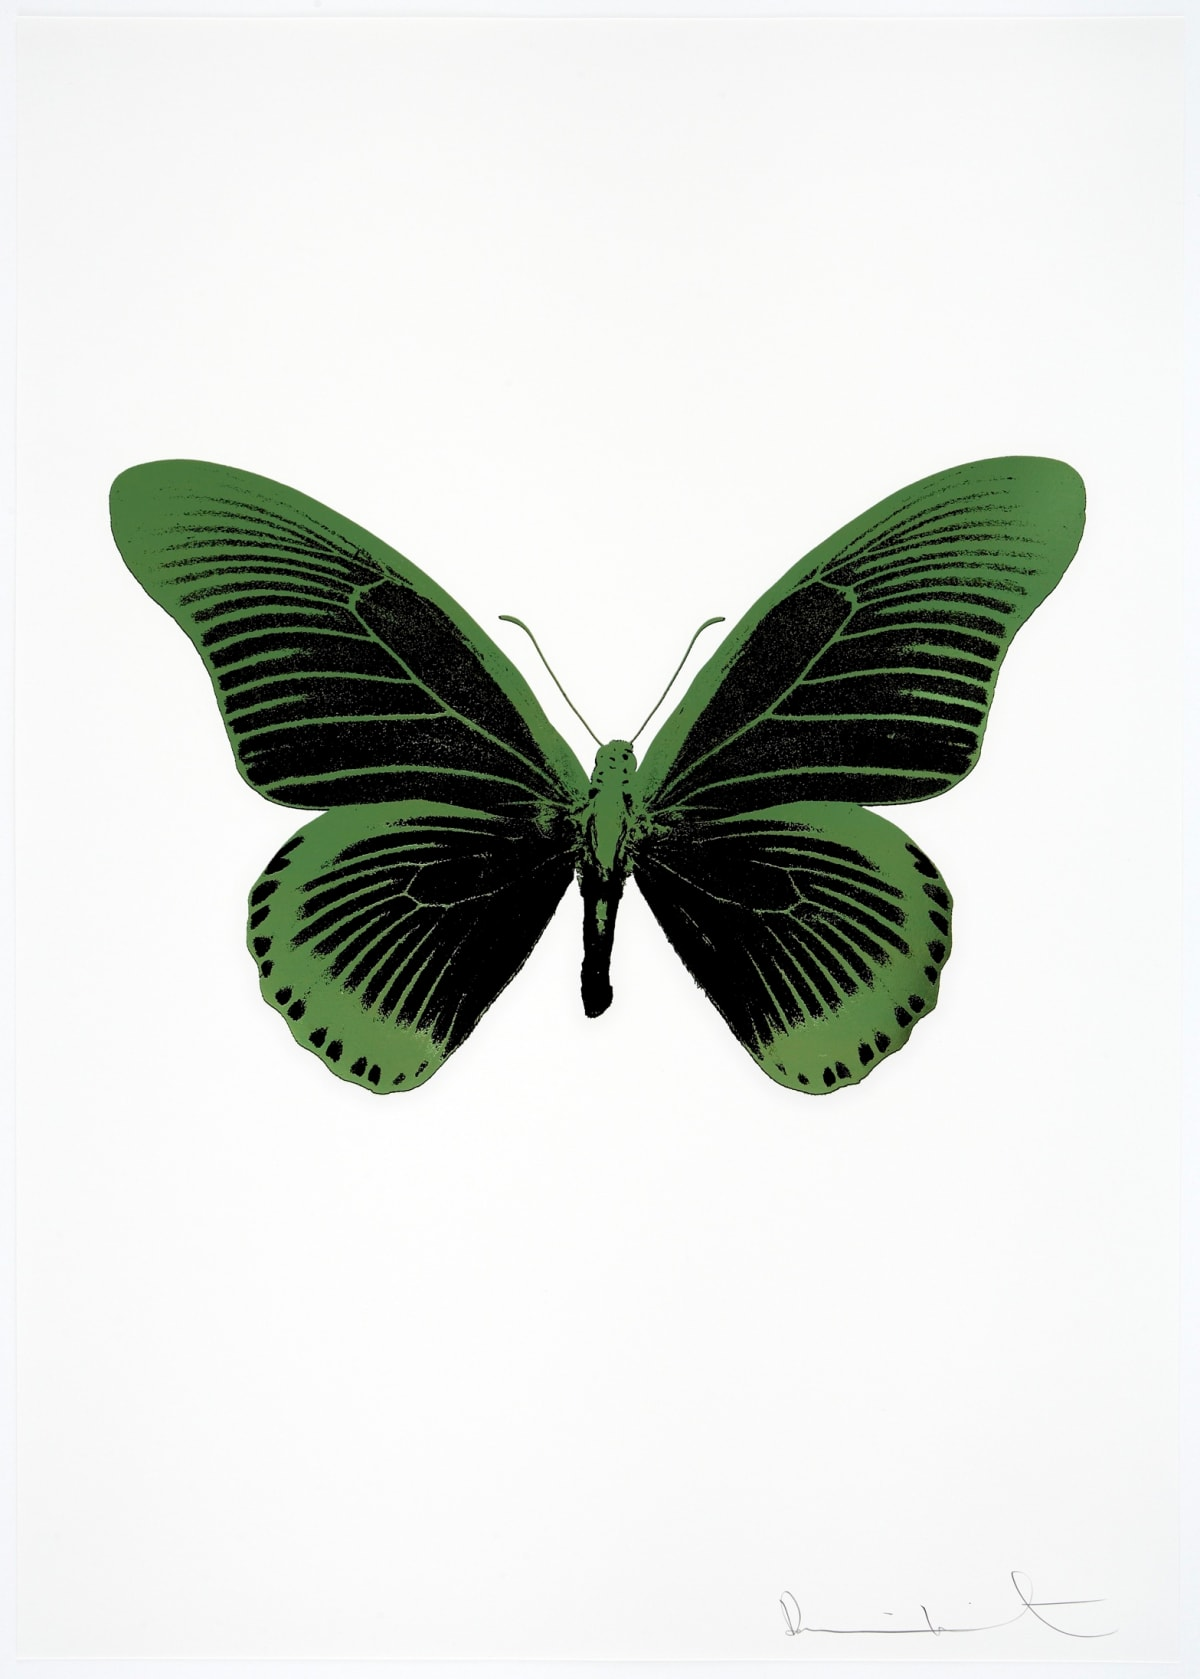 Damien Hirst The Souls IV - Raven Black/Leaf Green, 2010 2 colour foil block on 300gsm Arches 88 archival paper. Signed and numbered. Published by Paul Stolper and Other Criteria 72 x 51cm OC8053 / 1418-76 Edition of 15